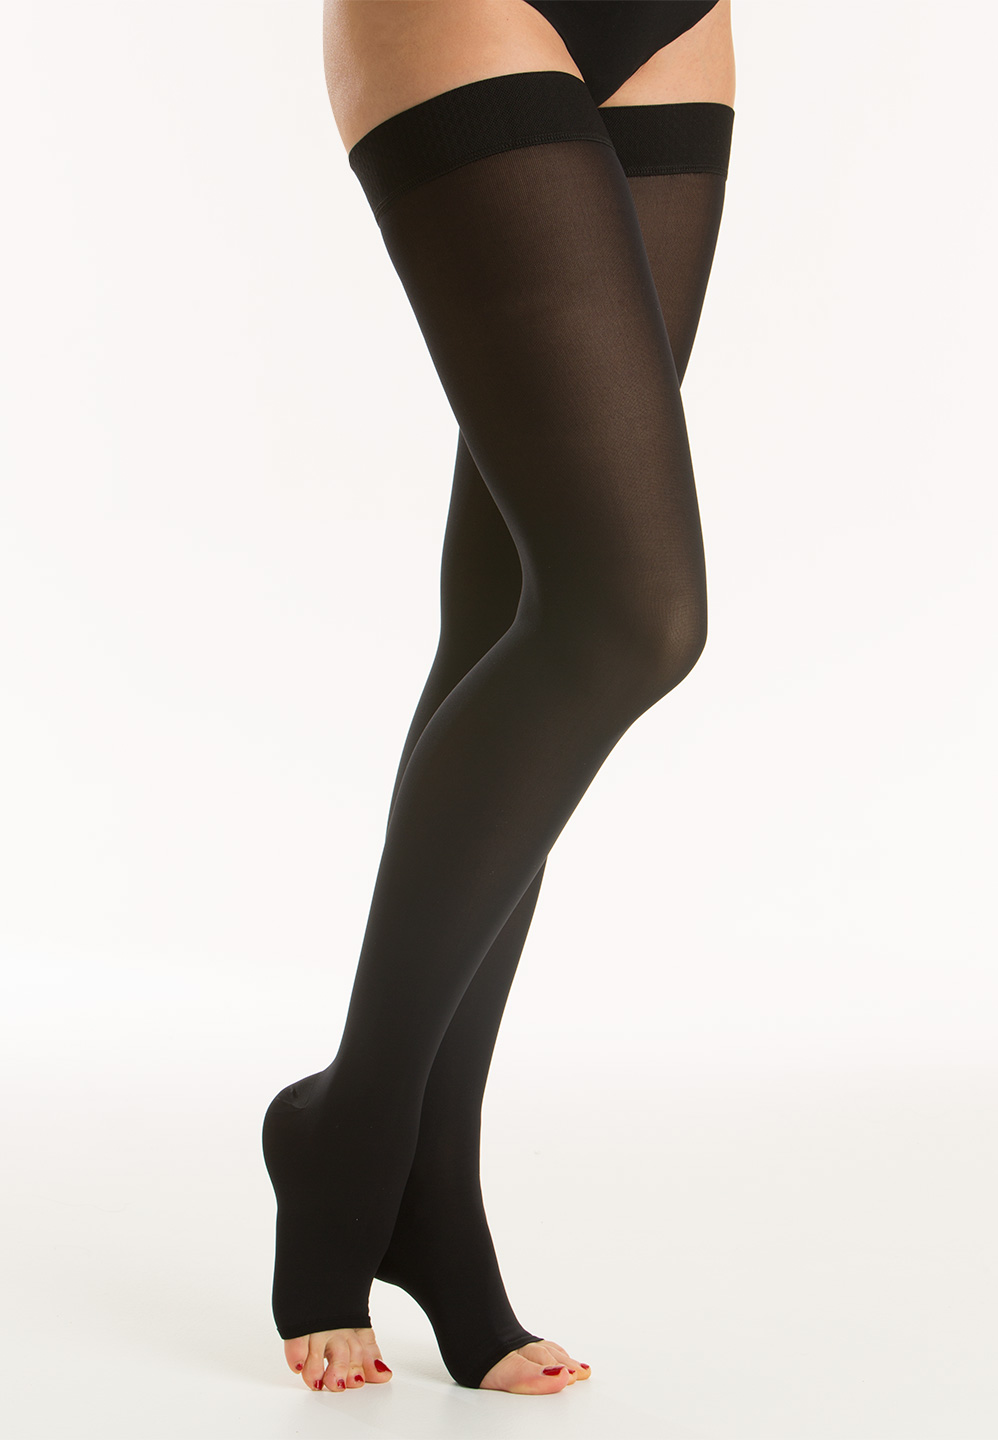 Relaxsan M2070 Cotton medical compression hold up stockings Class 2 23-32 mmHg